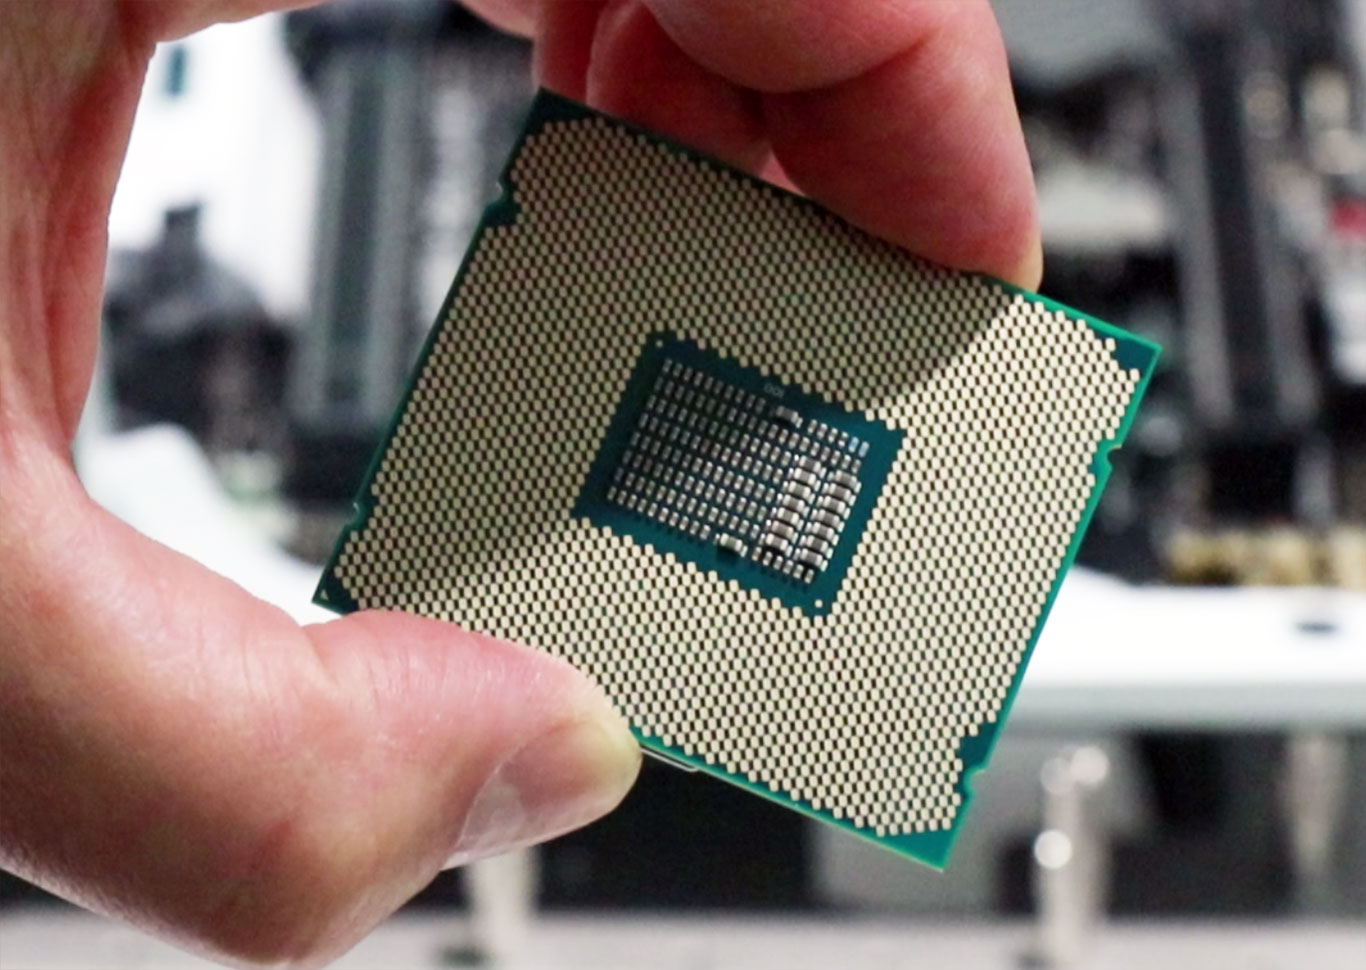 Intel Core i9-7900X And Core i7-7740X CPU Review: Skylake-X and Kaby Lake-X Debut